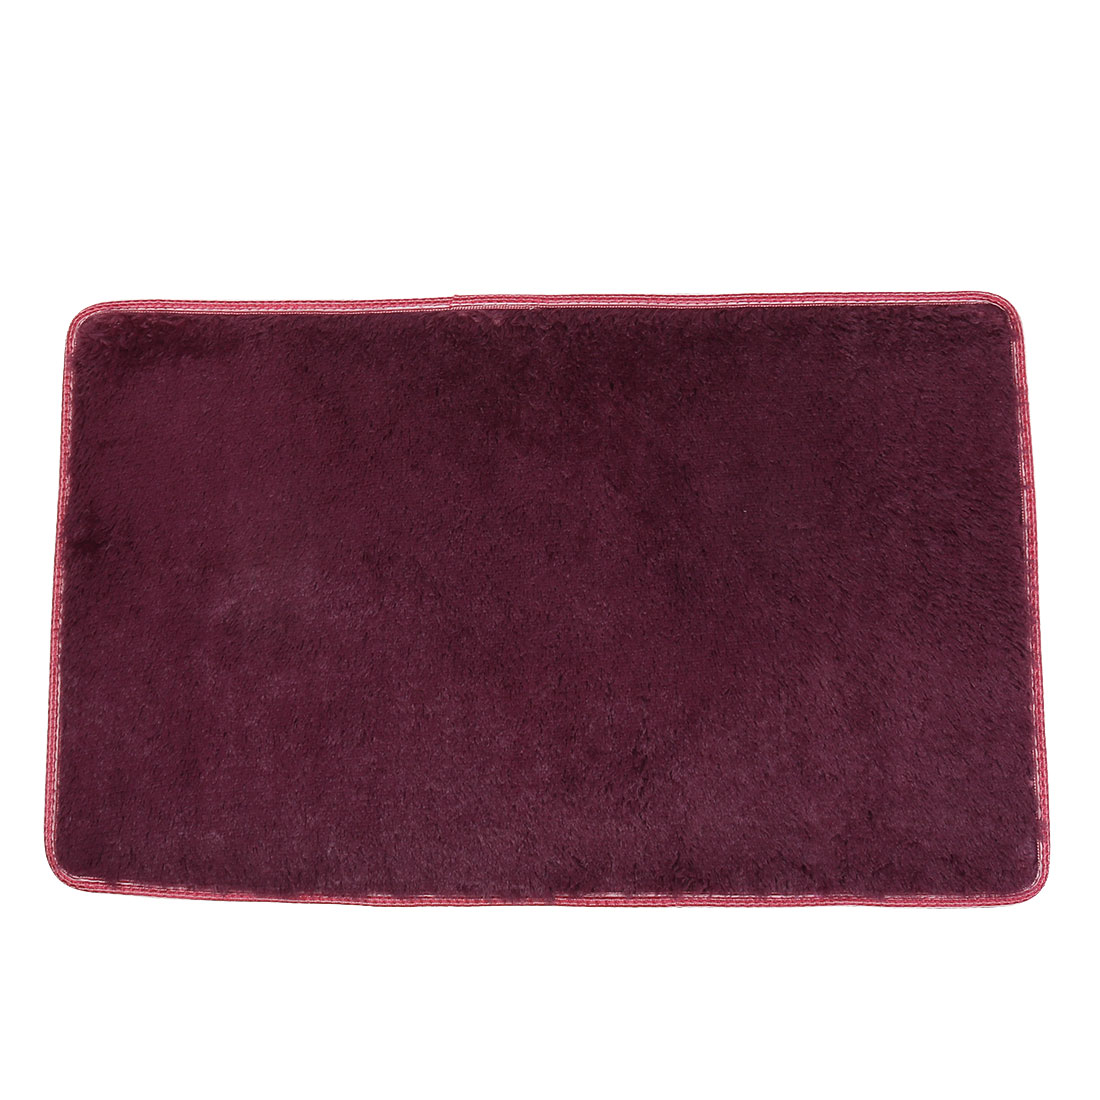 Home Plush Rectangle Anti-slip Floor Rug Carpet Cushion Doormat Burgundy 80cm x 50cm